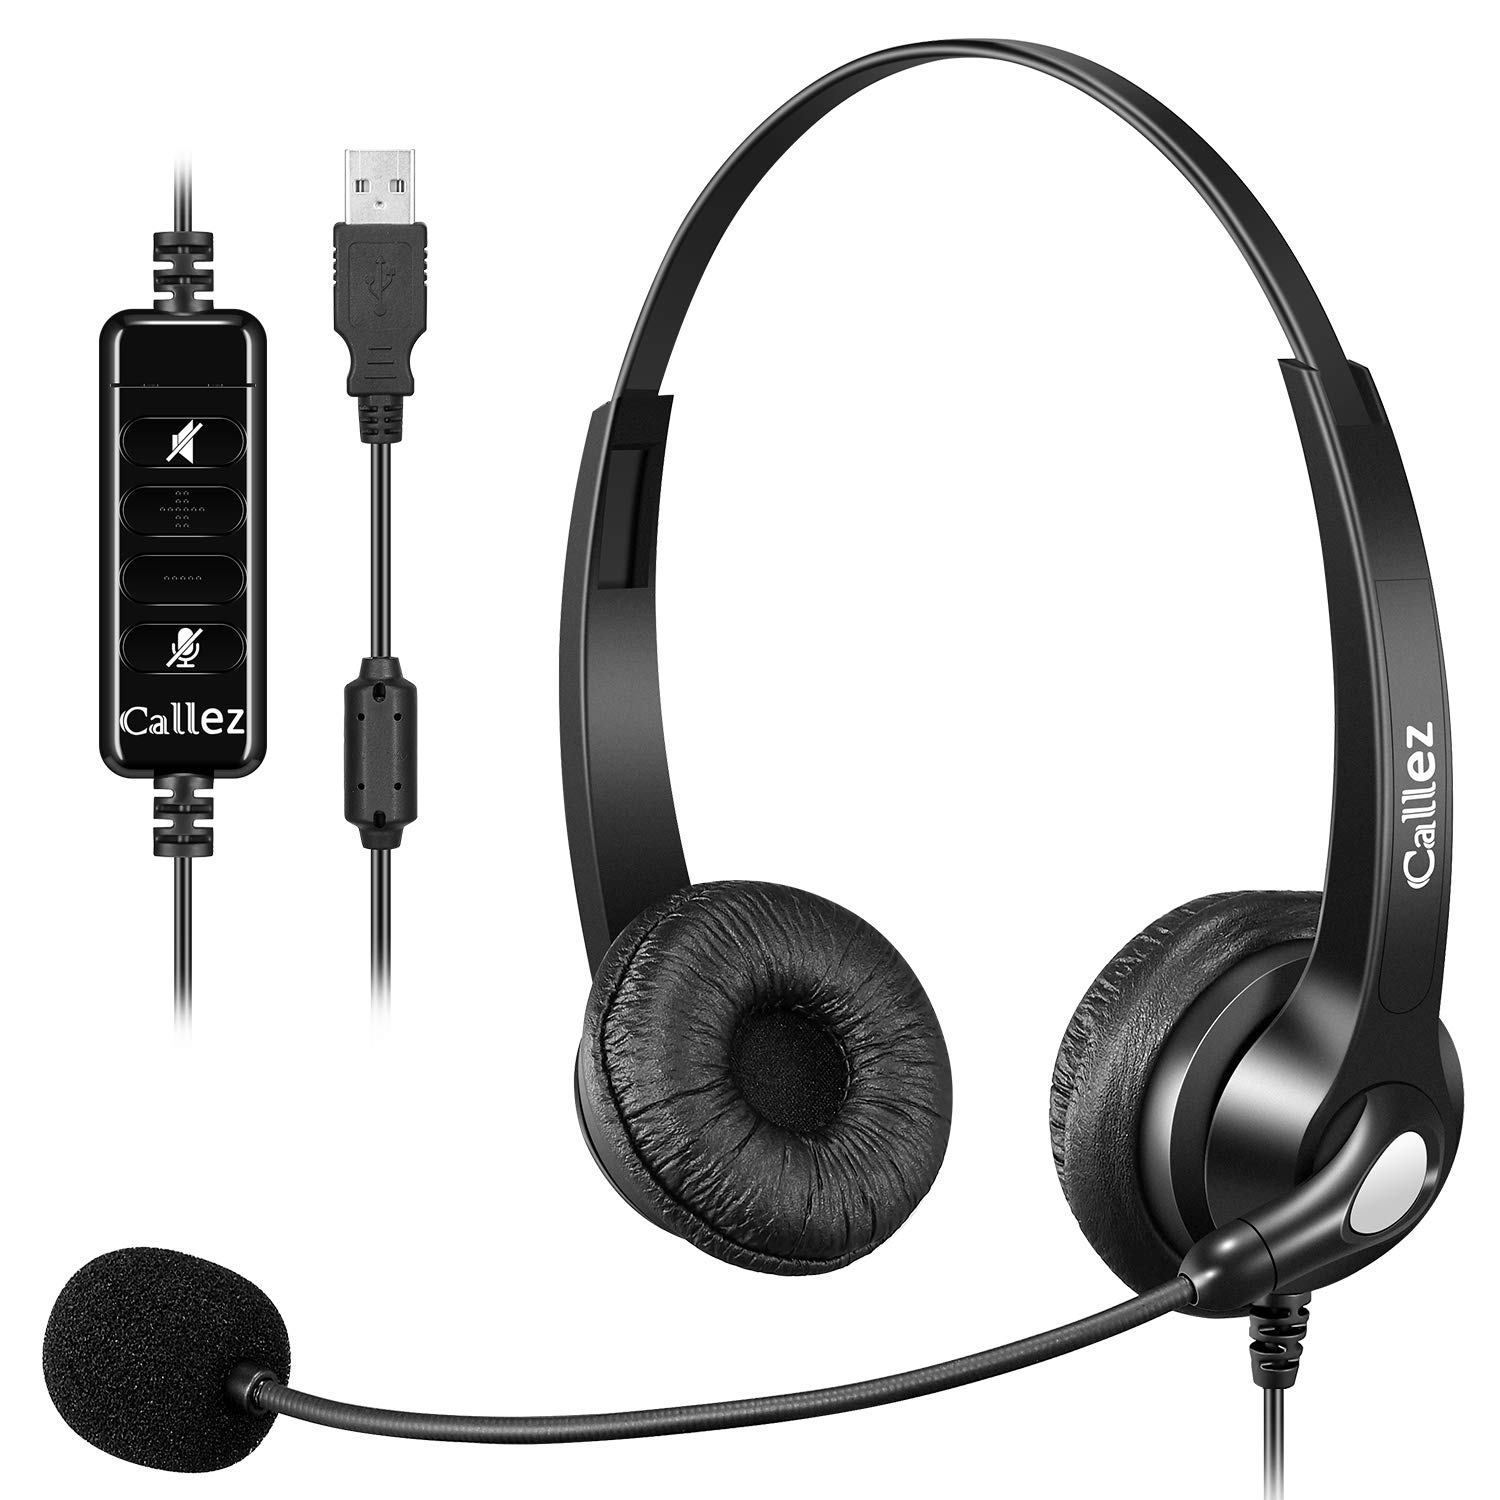 USB Headset with Microphone Noise Cancelling & Audio Controls, Stereo Computer Headphones for Business Skype UC Lync Softphone Call Center Office, Clearer Voice, Super Light, Ultra Comfort